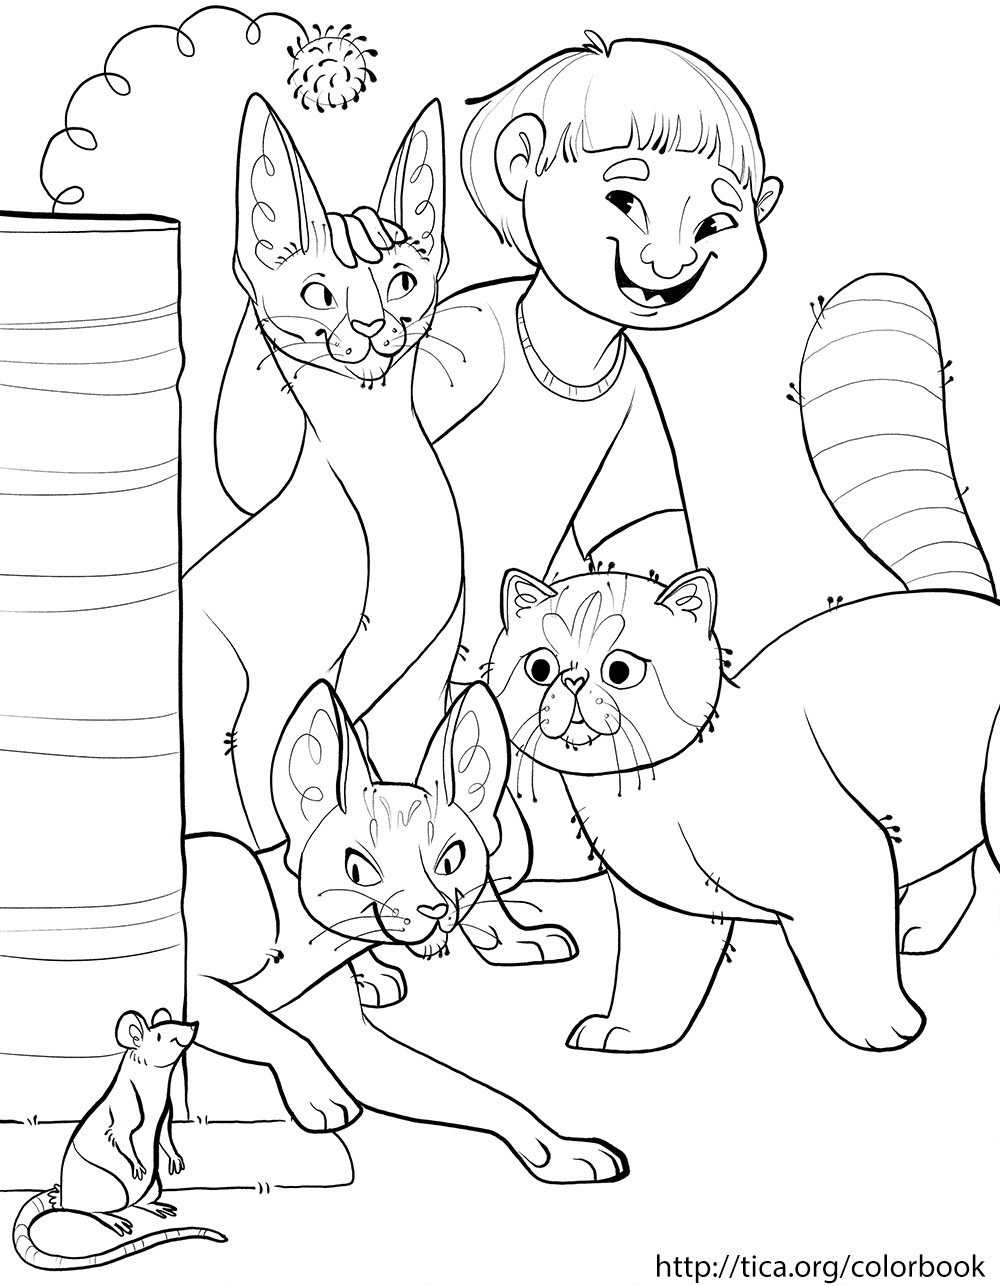 TICA Cat Coloring Book Page 5